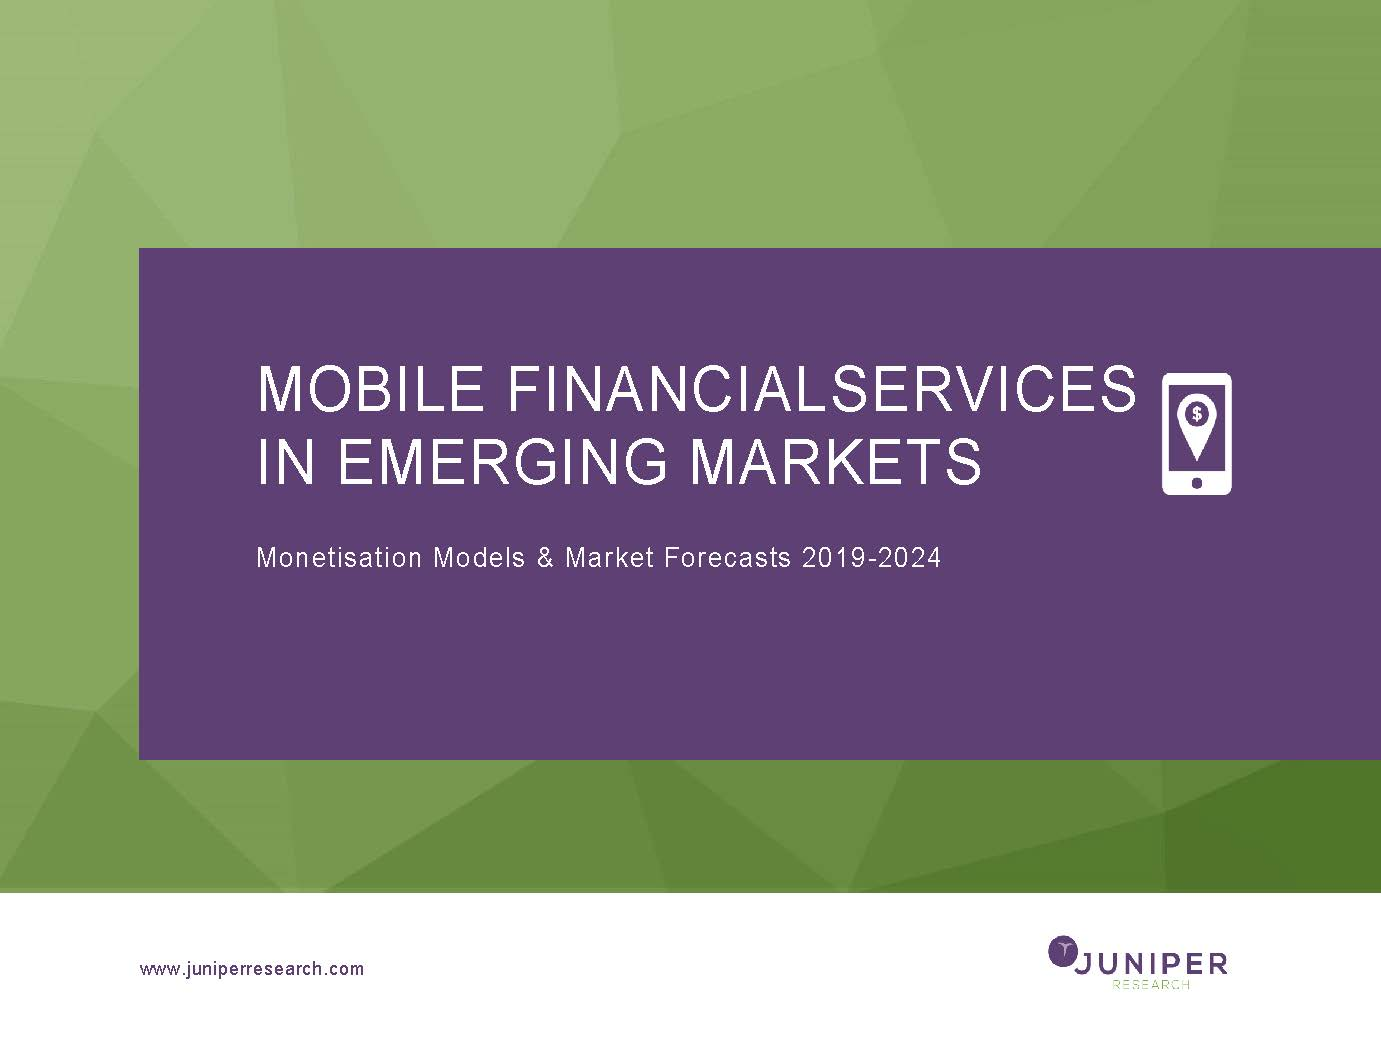 Mobile Financial Services in Emerging Markets